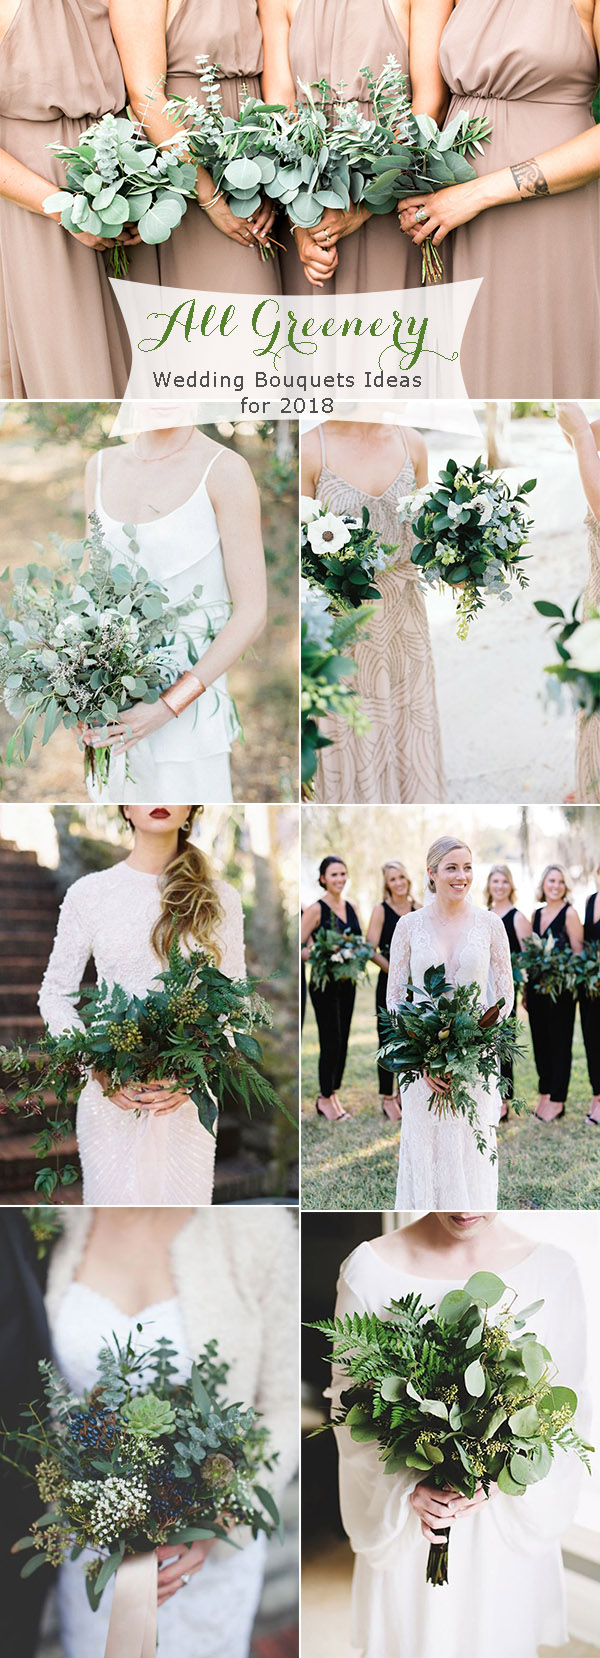 Trendy greenery wedding ideas for 2018 brides for Wedding greenery ideas